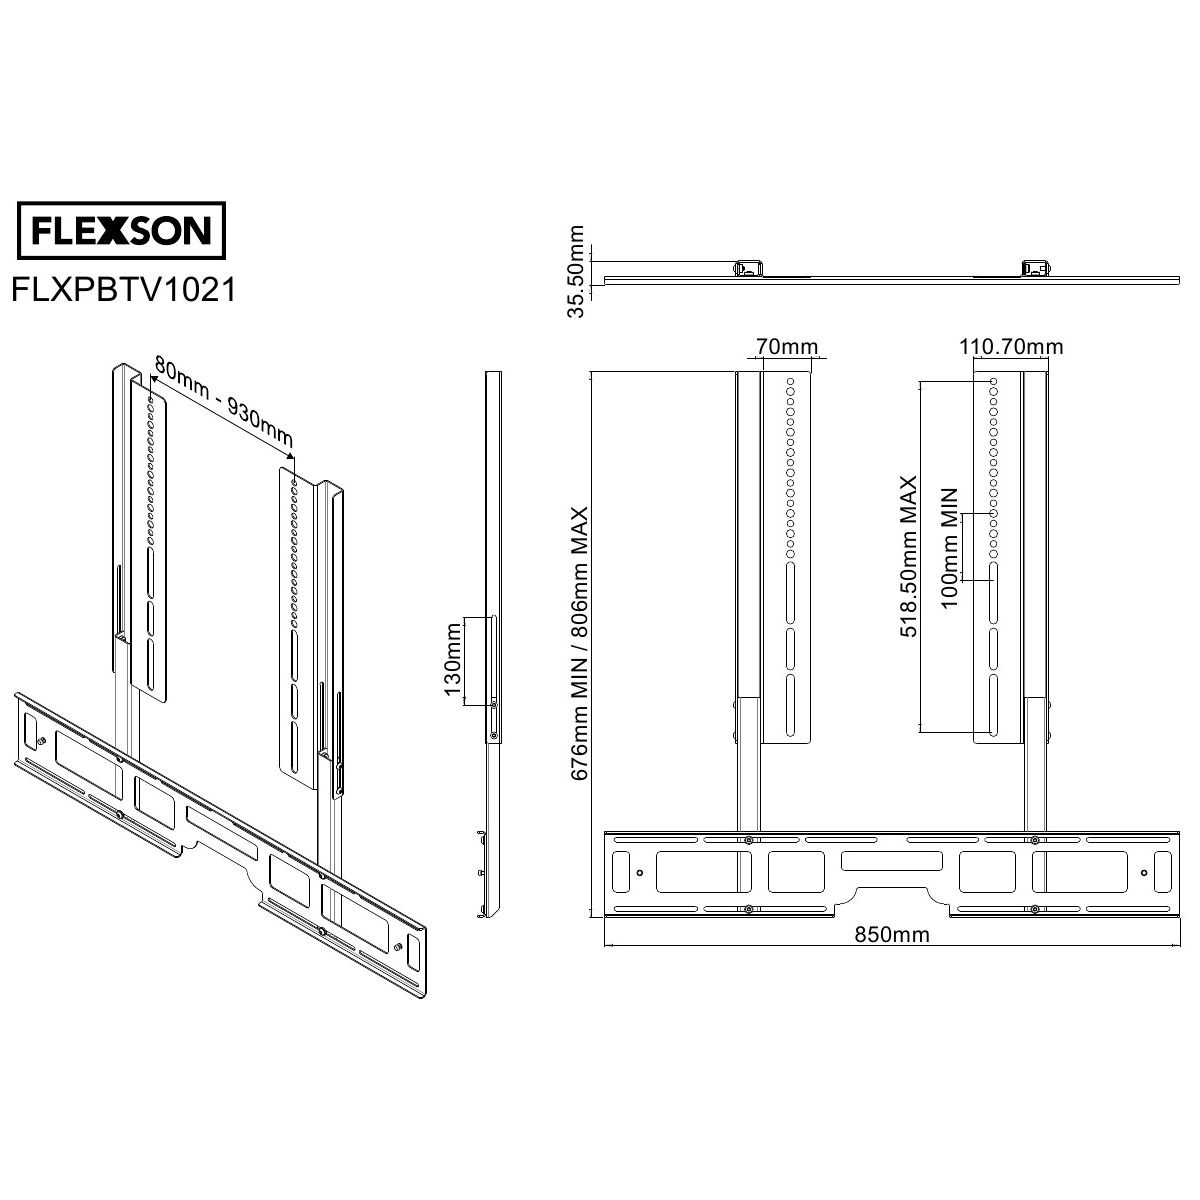 Support flexson sonos playbar + tv fixe - 20% de remise immédiate avec le code : multi20 (photo)